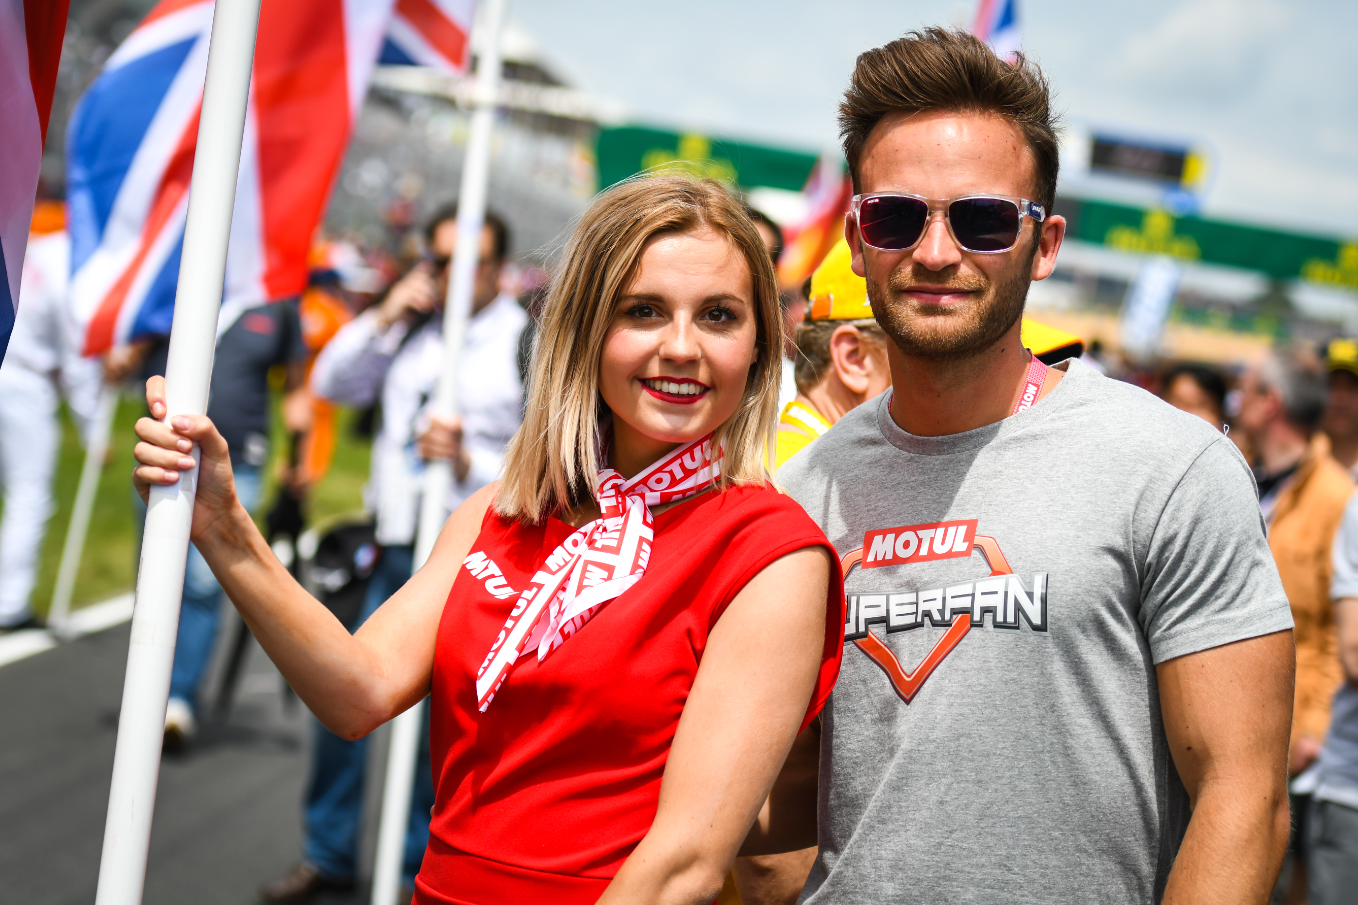 Motul Superfan at LM24: Best 24-hours of my life